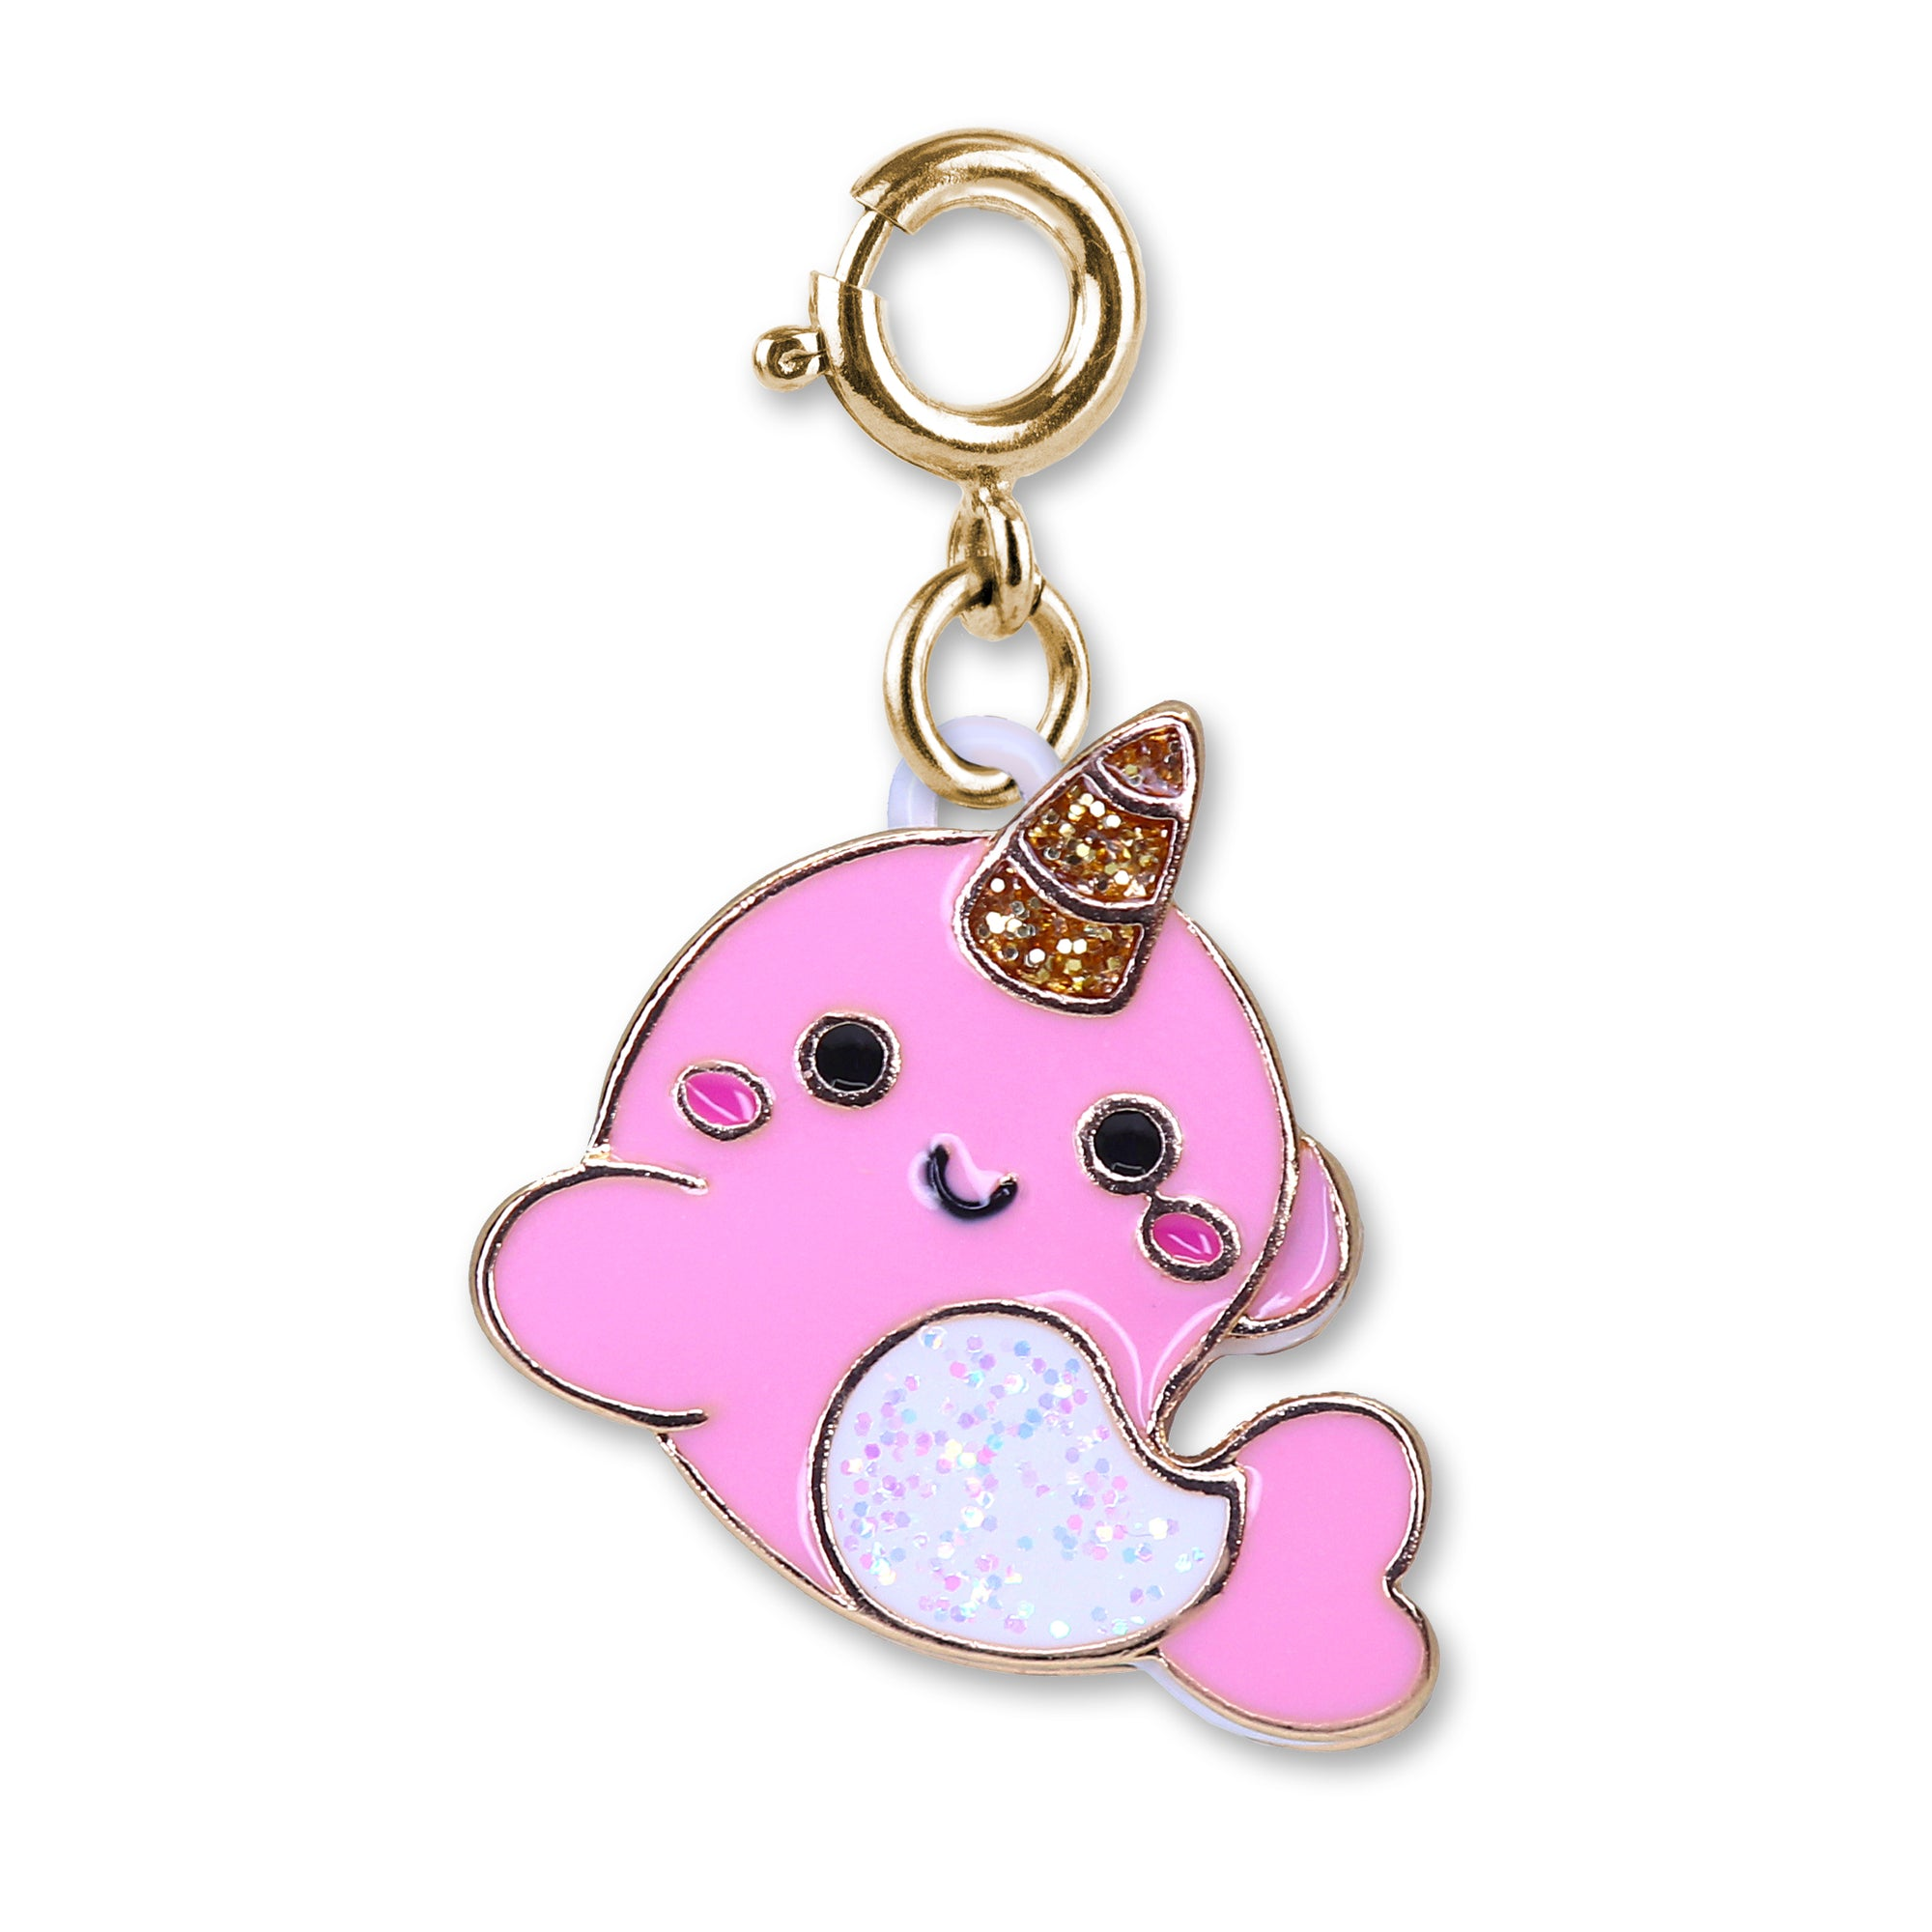 Shop Gold Glitter Narwhal Charm